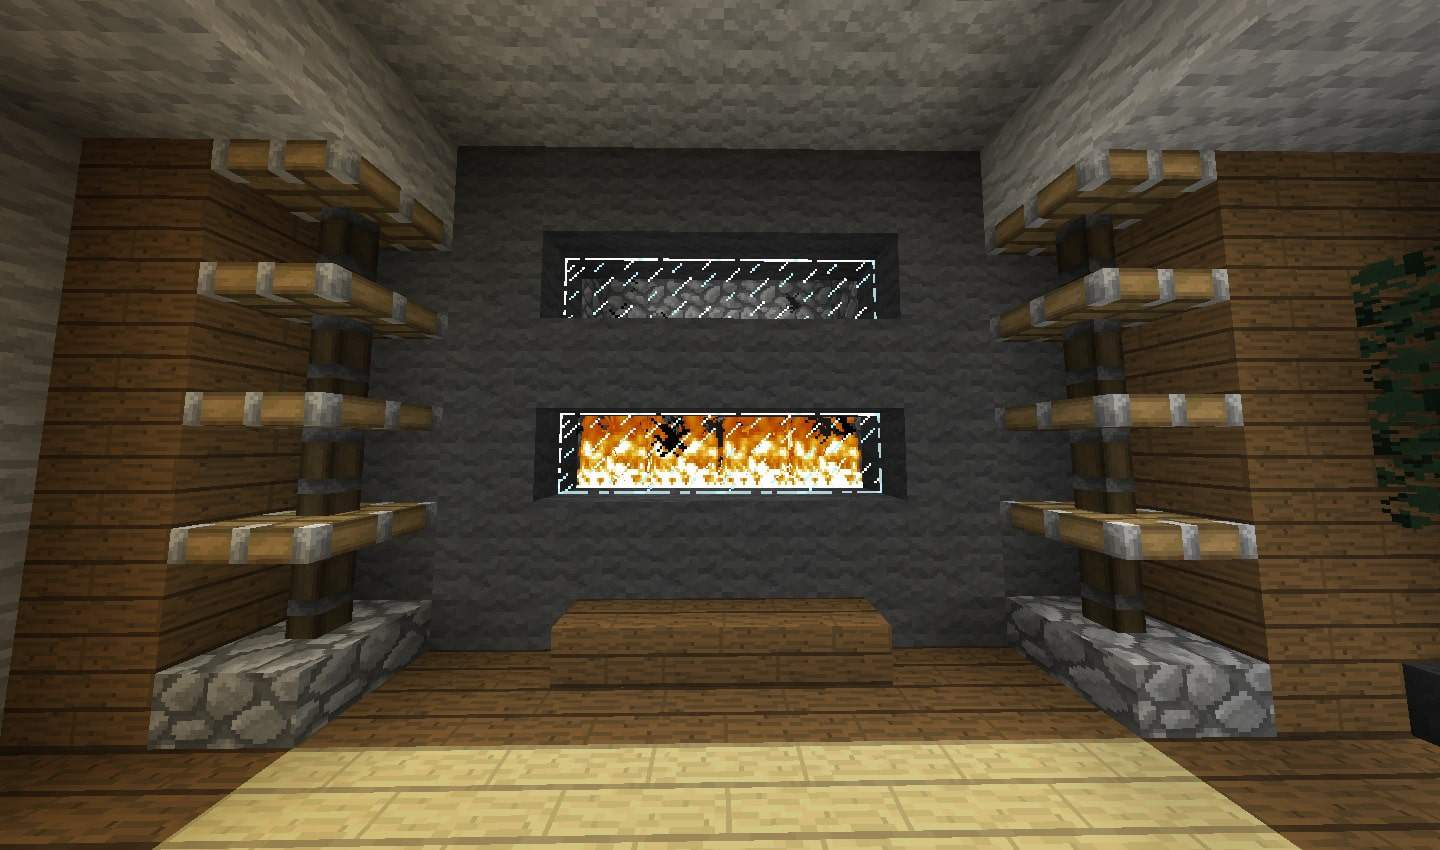 duel window fireplace design minecraft building interior shelves seat